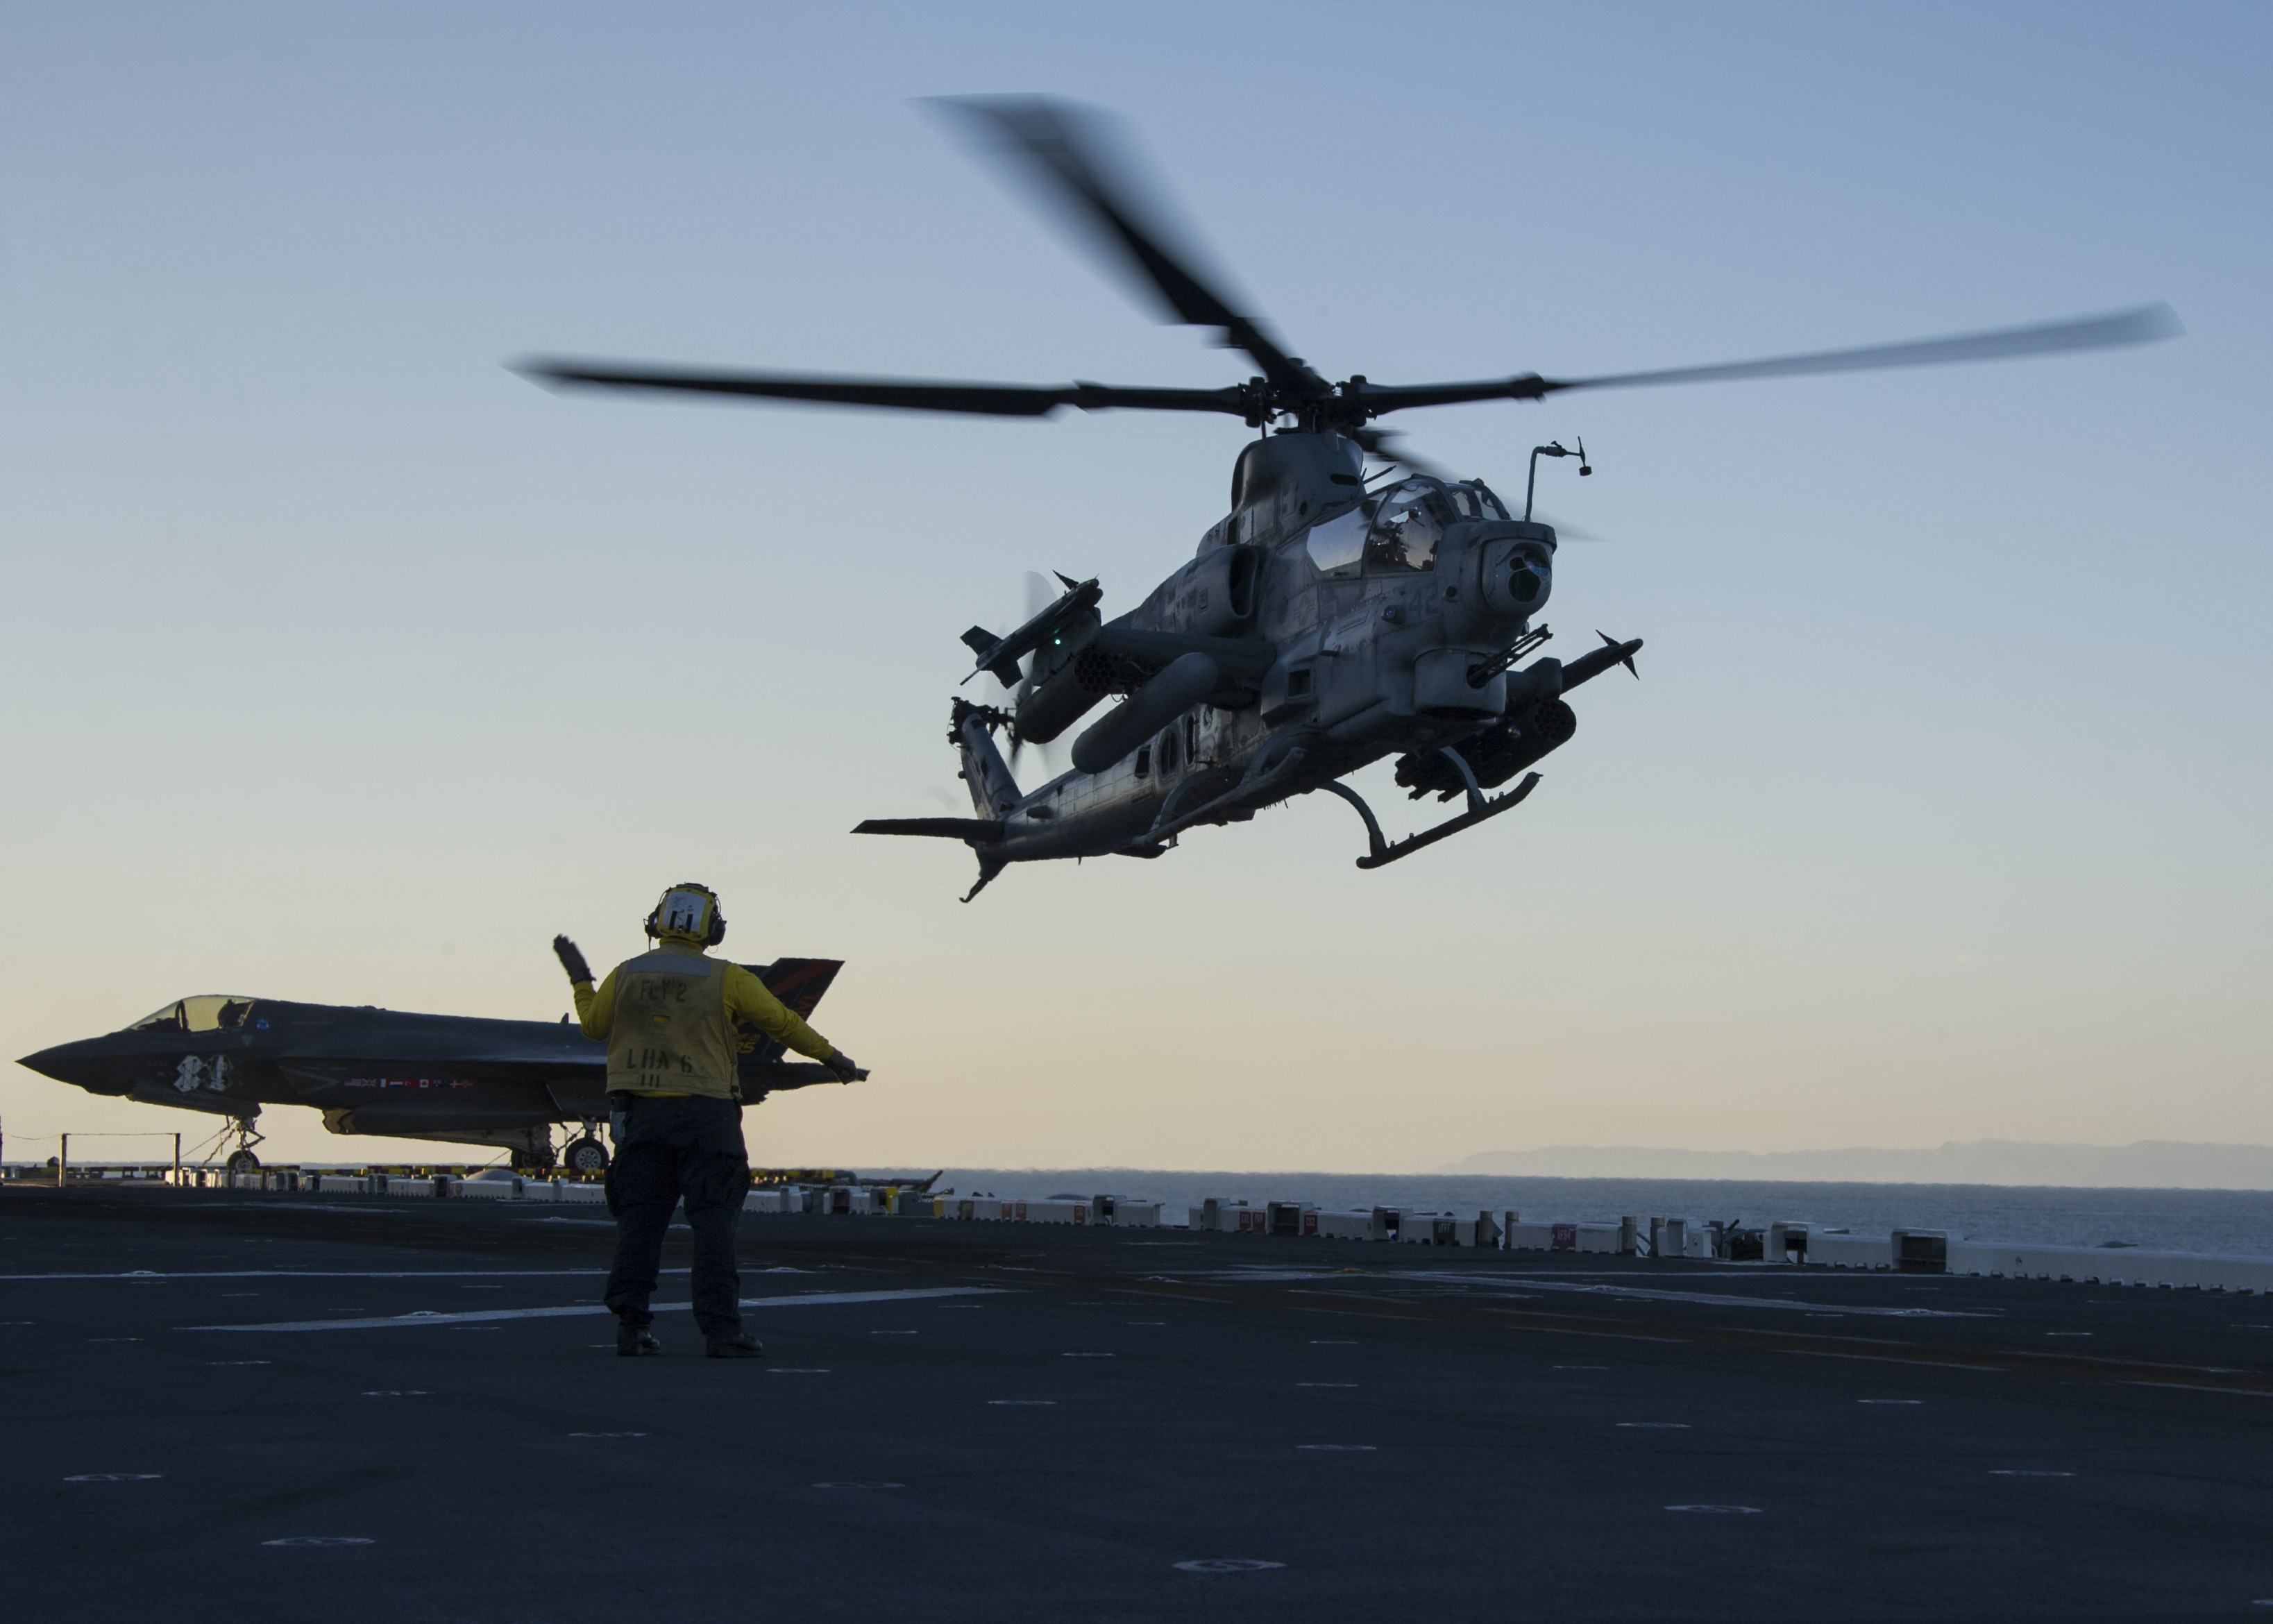 An AH-1Z Viper Attack Helicopter assigned to Marine Operational Test and Evaluation Squadron 1 (VMX-1) takes off from the flight deck of amphibious assault ship USS America (LHA-6) as part of the air wing including F-35B Lightning II aircrafts on Nov. 17, 2016. US Navy Photo